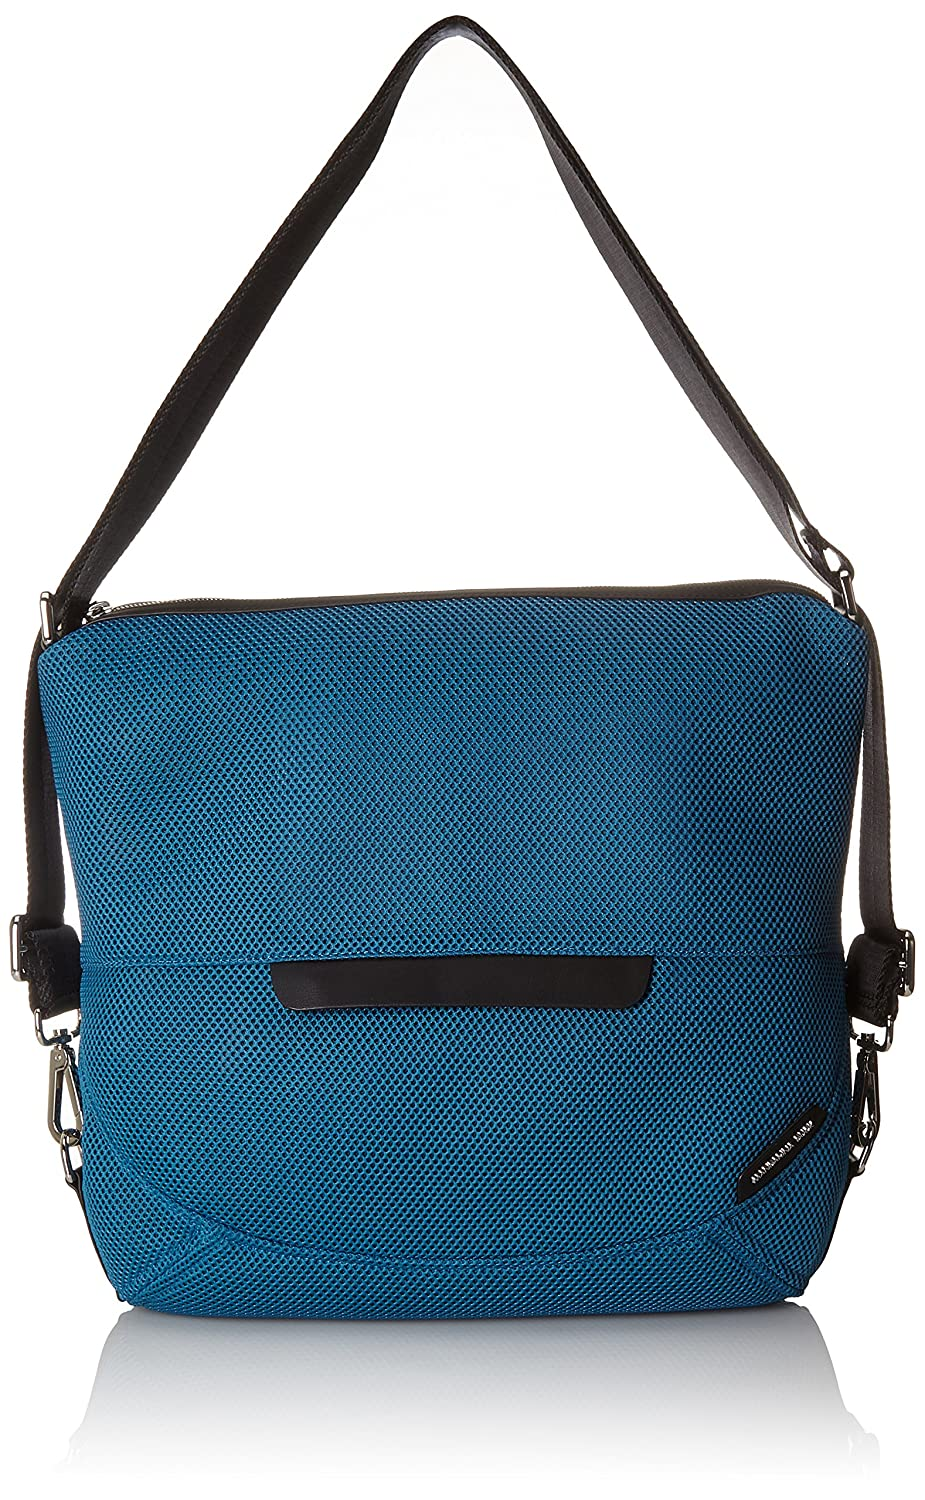 bluee (Fjord bluee 22p) Mandarina Duck Women's Slide Mesh Tracolla Shoulder Bag